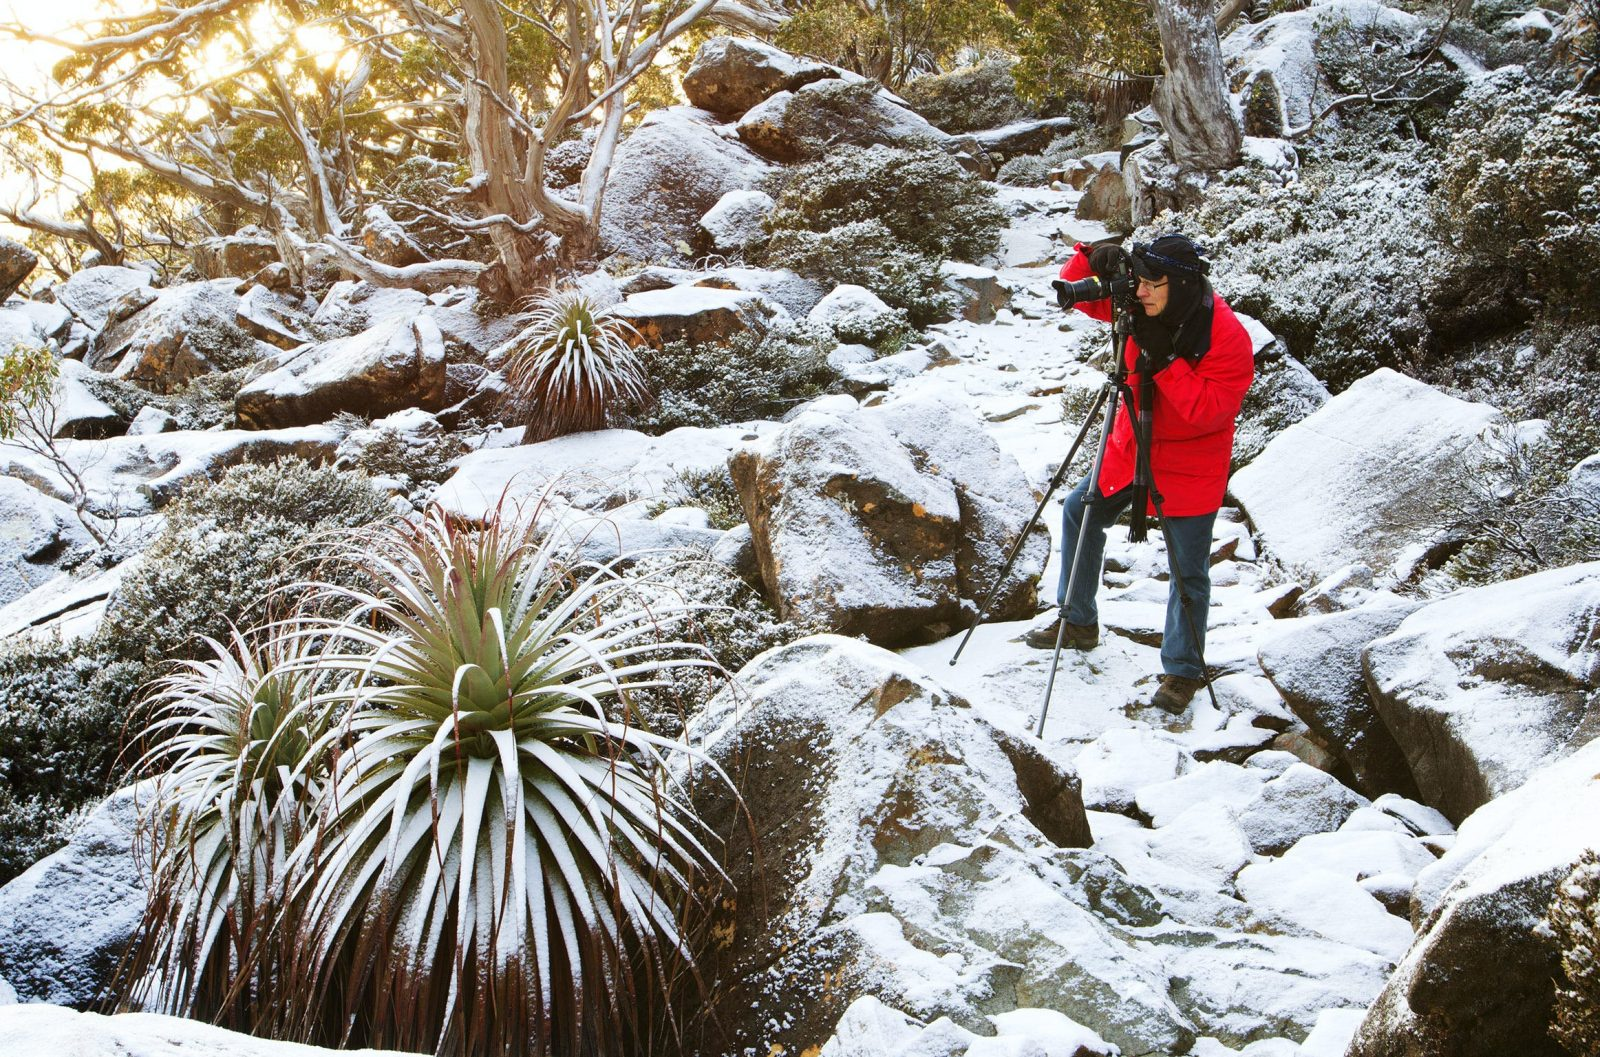 Snow, snow gums, pandani and boulders made for some stunning photography on this photographic tour